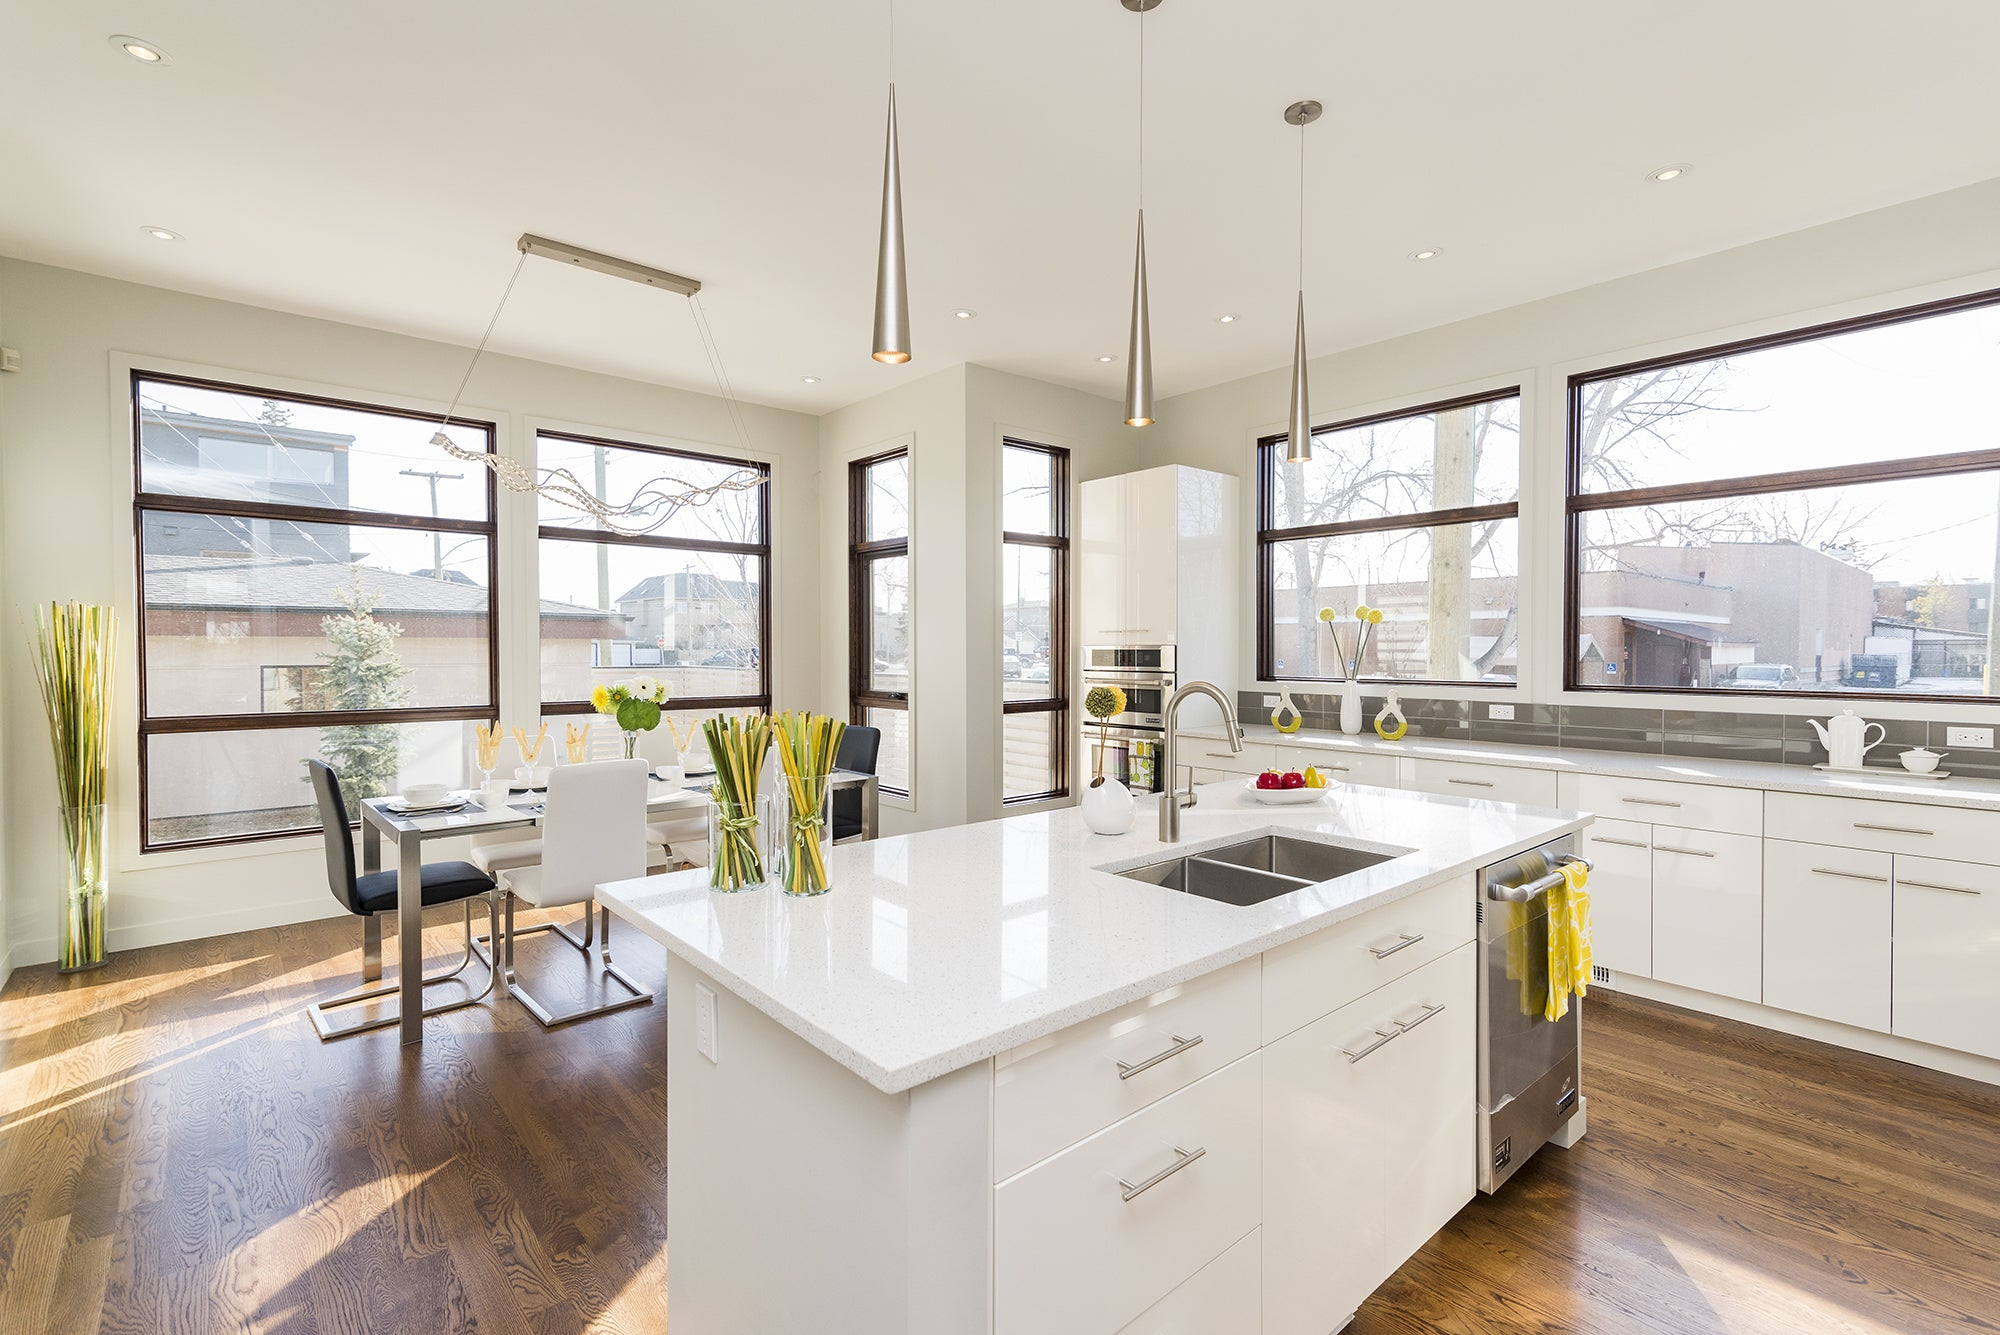 Caring for Kitchen Surfaces